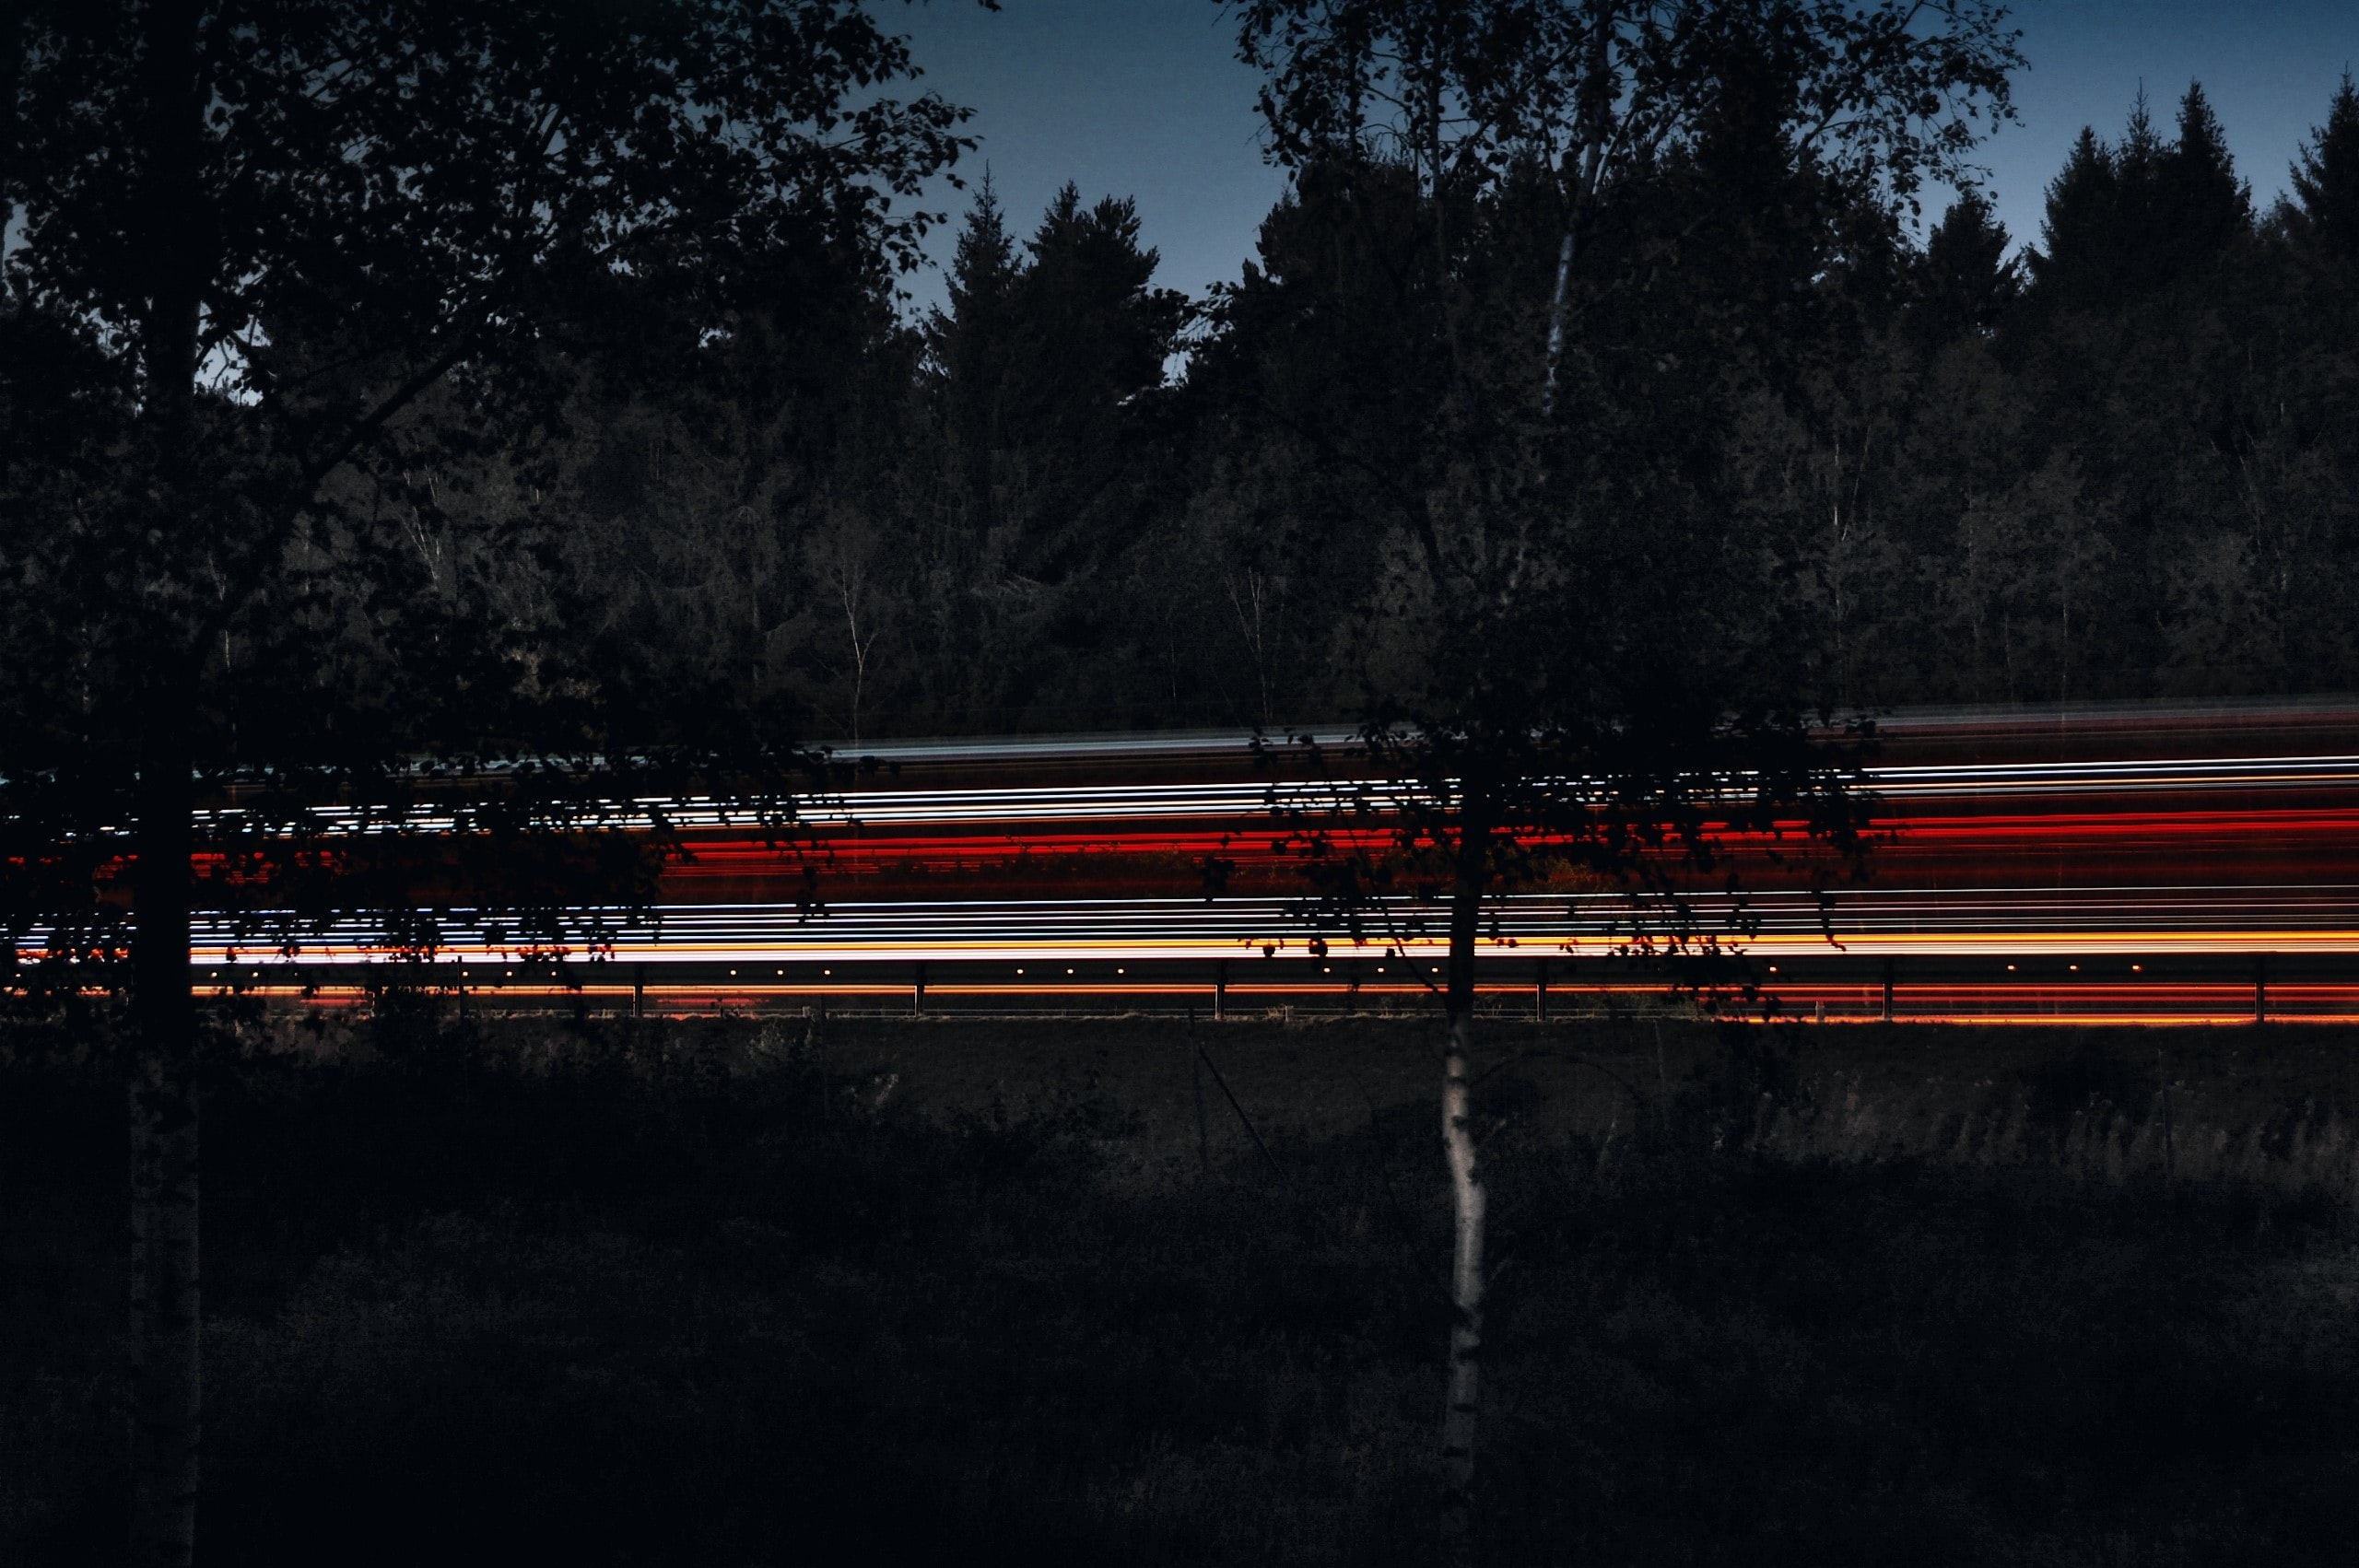 time-lapse photography of vehicle running on road in between trees at nighttime